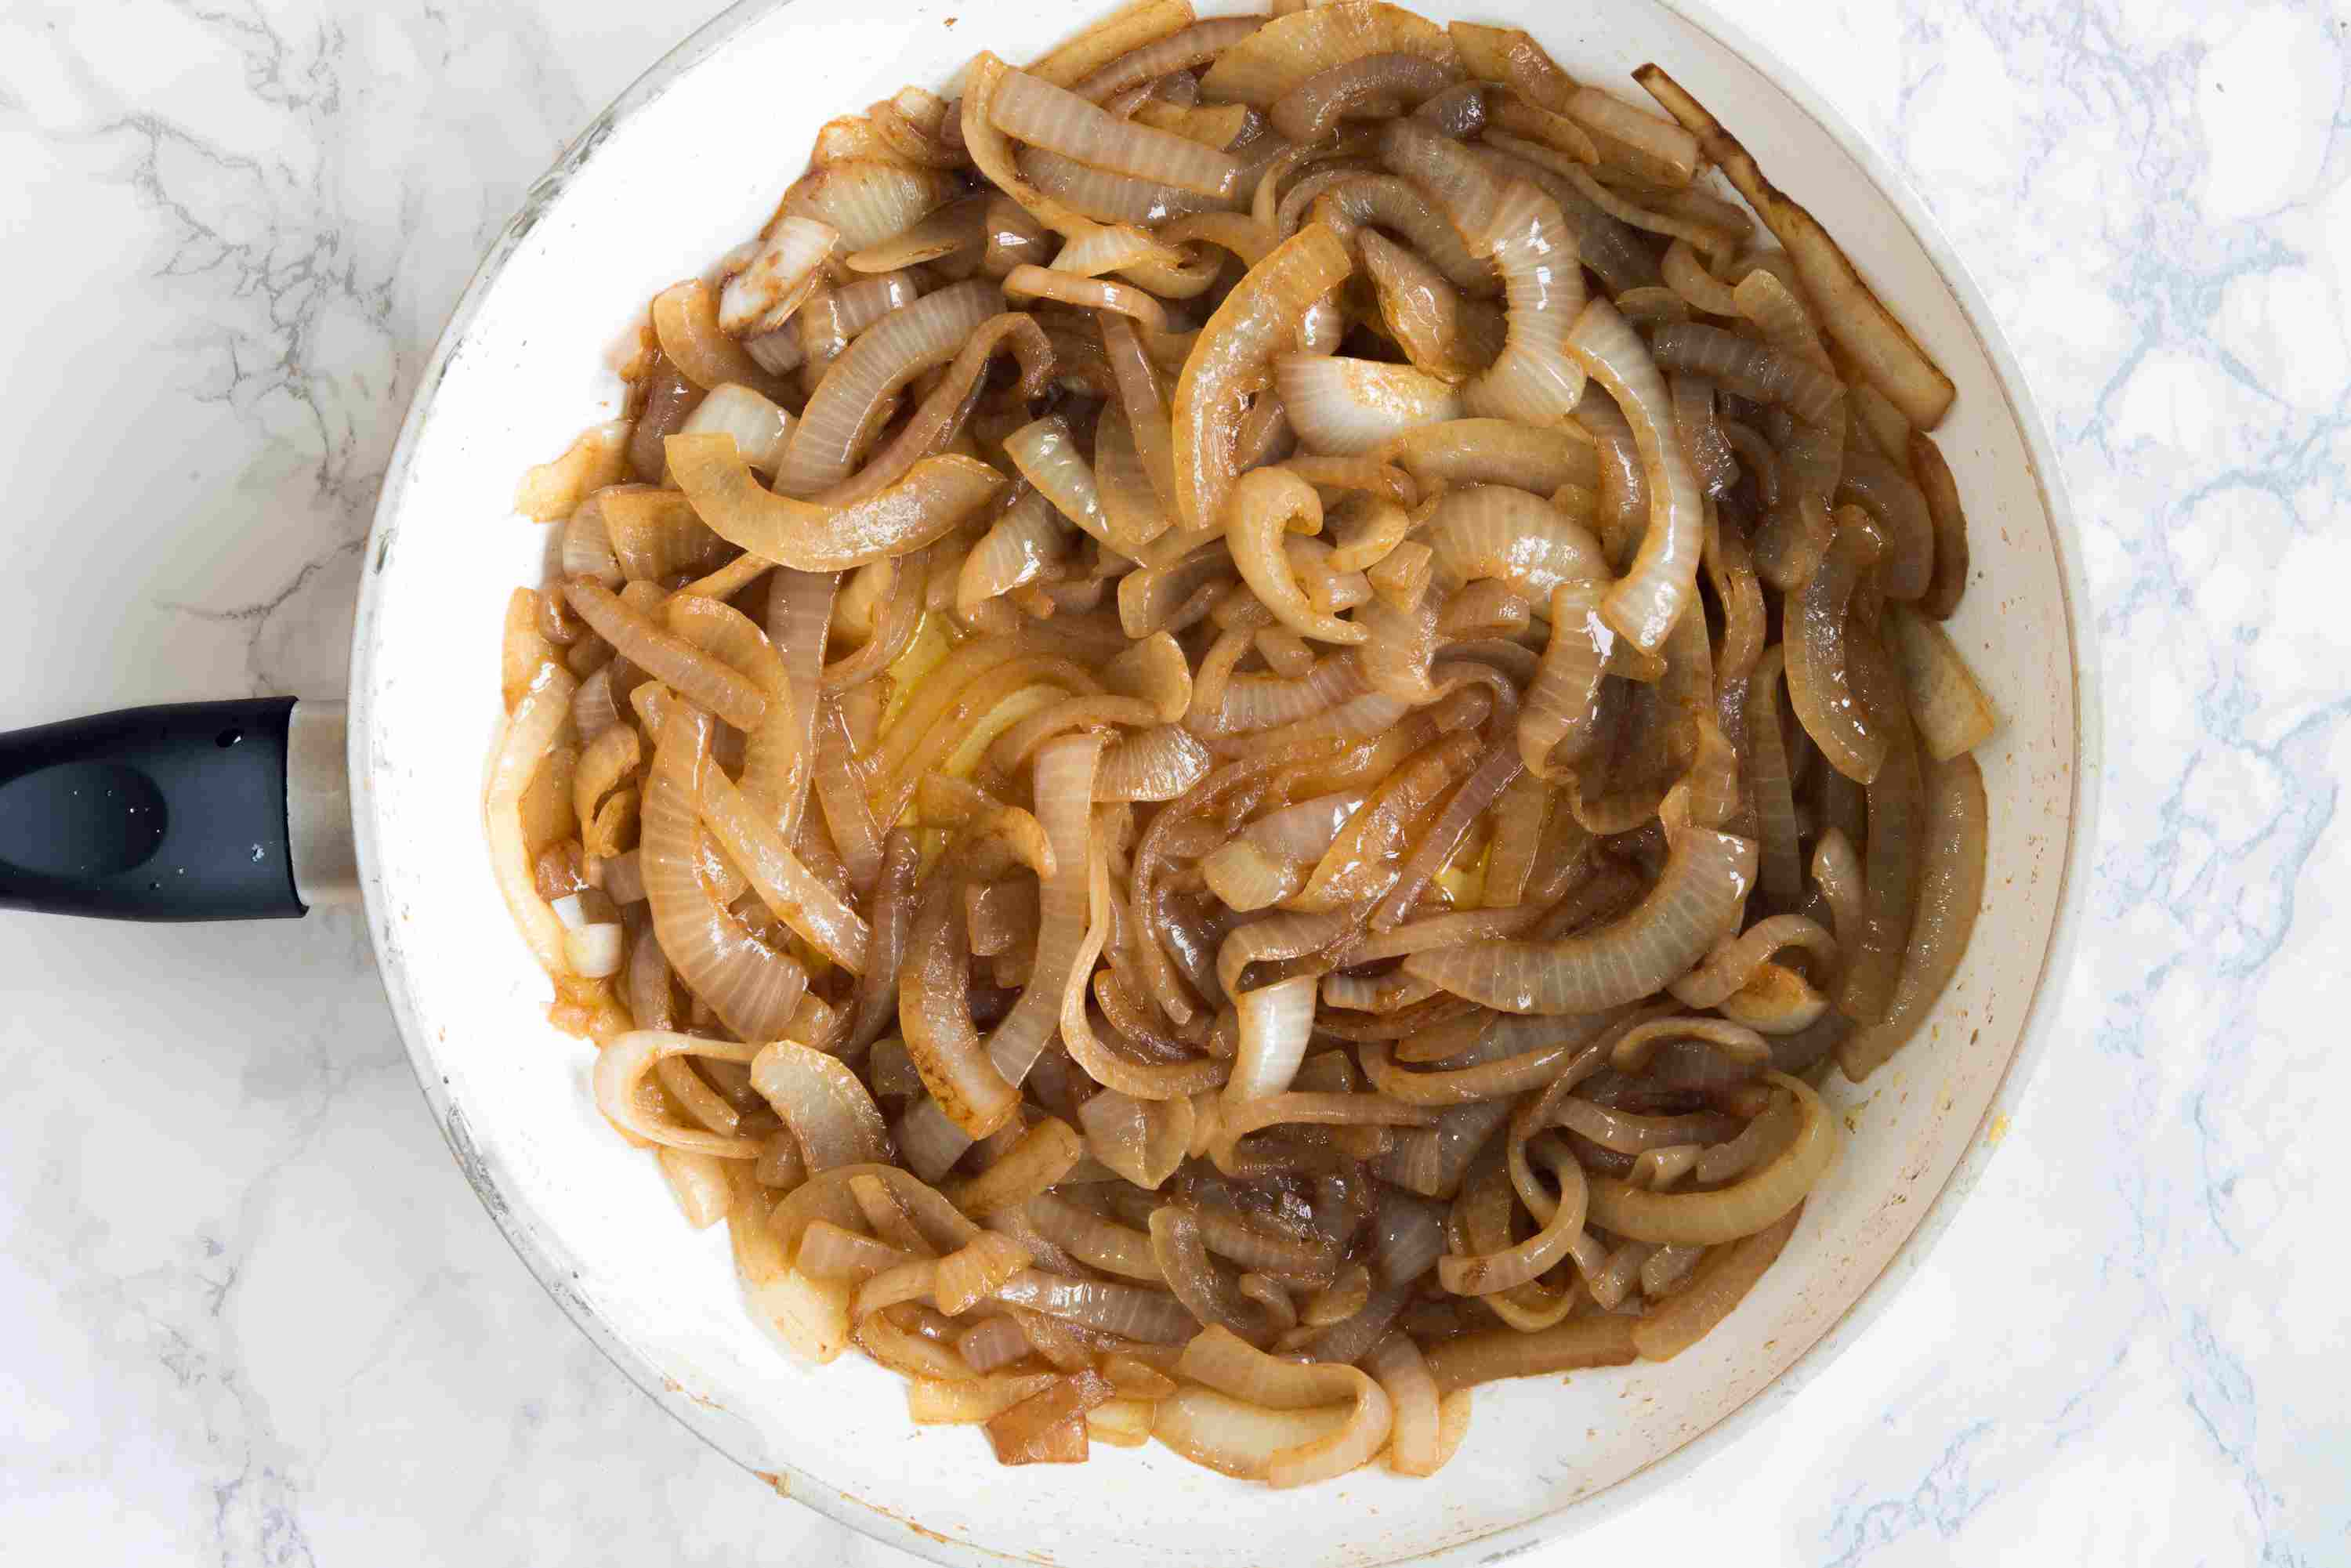 Caramelized Onions Browning